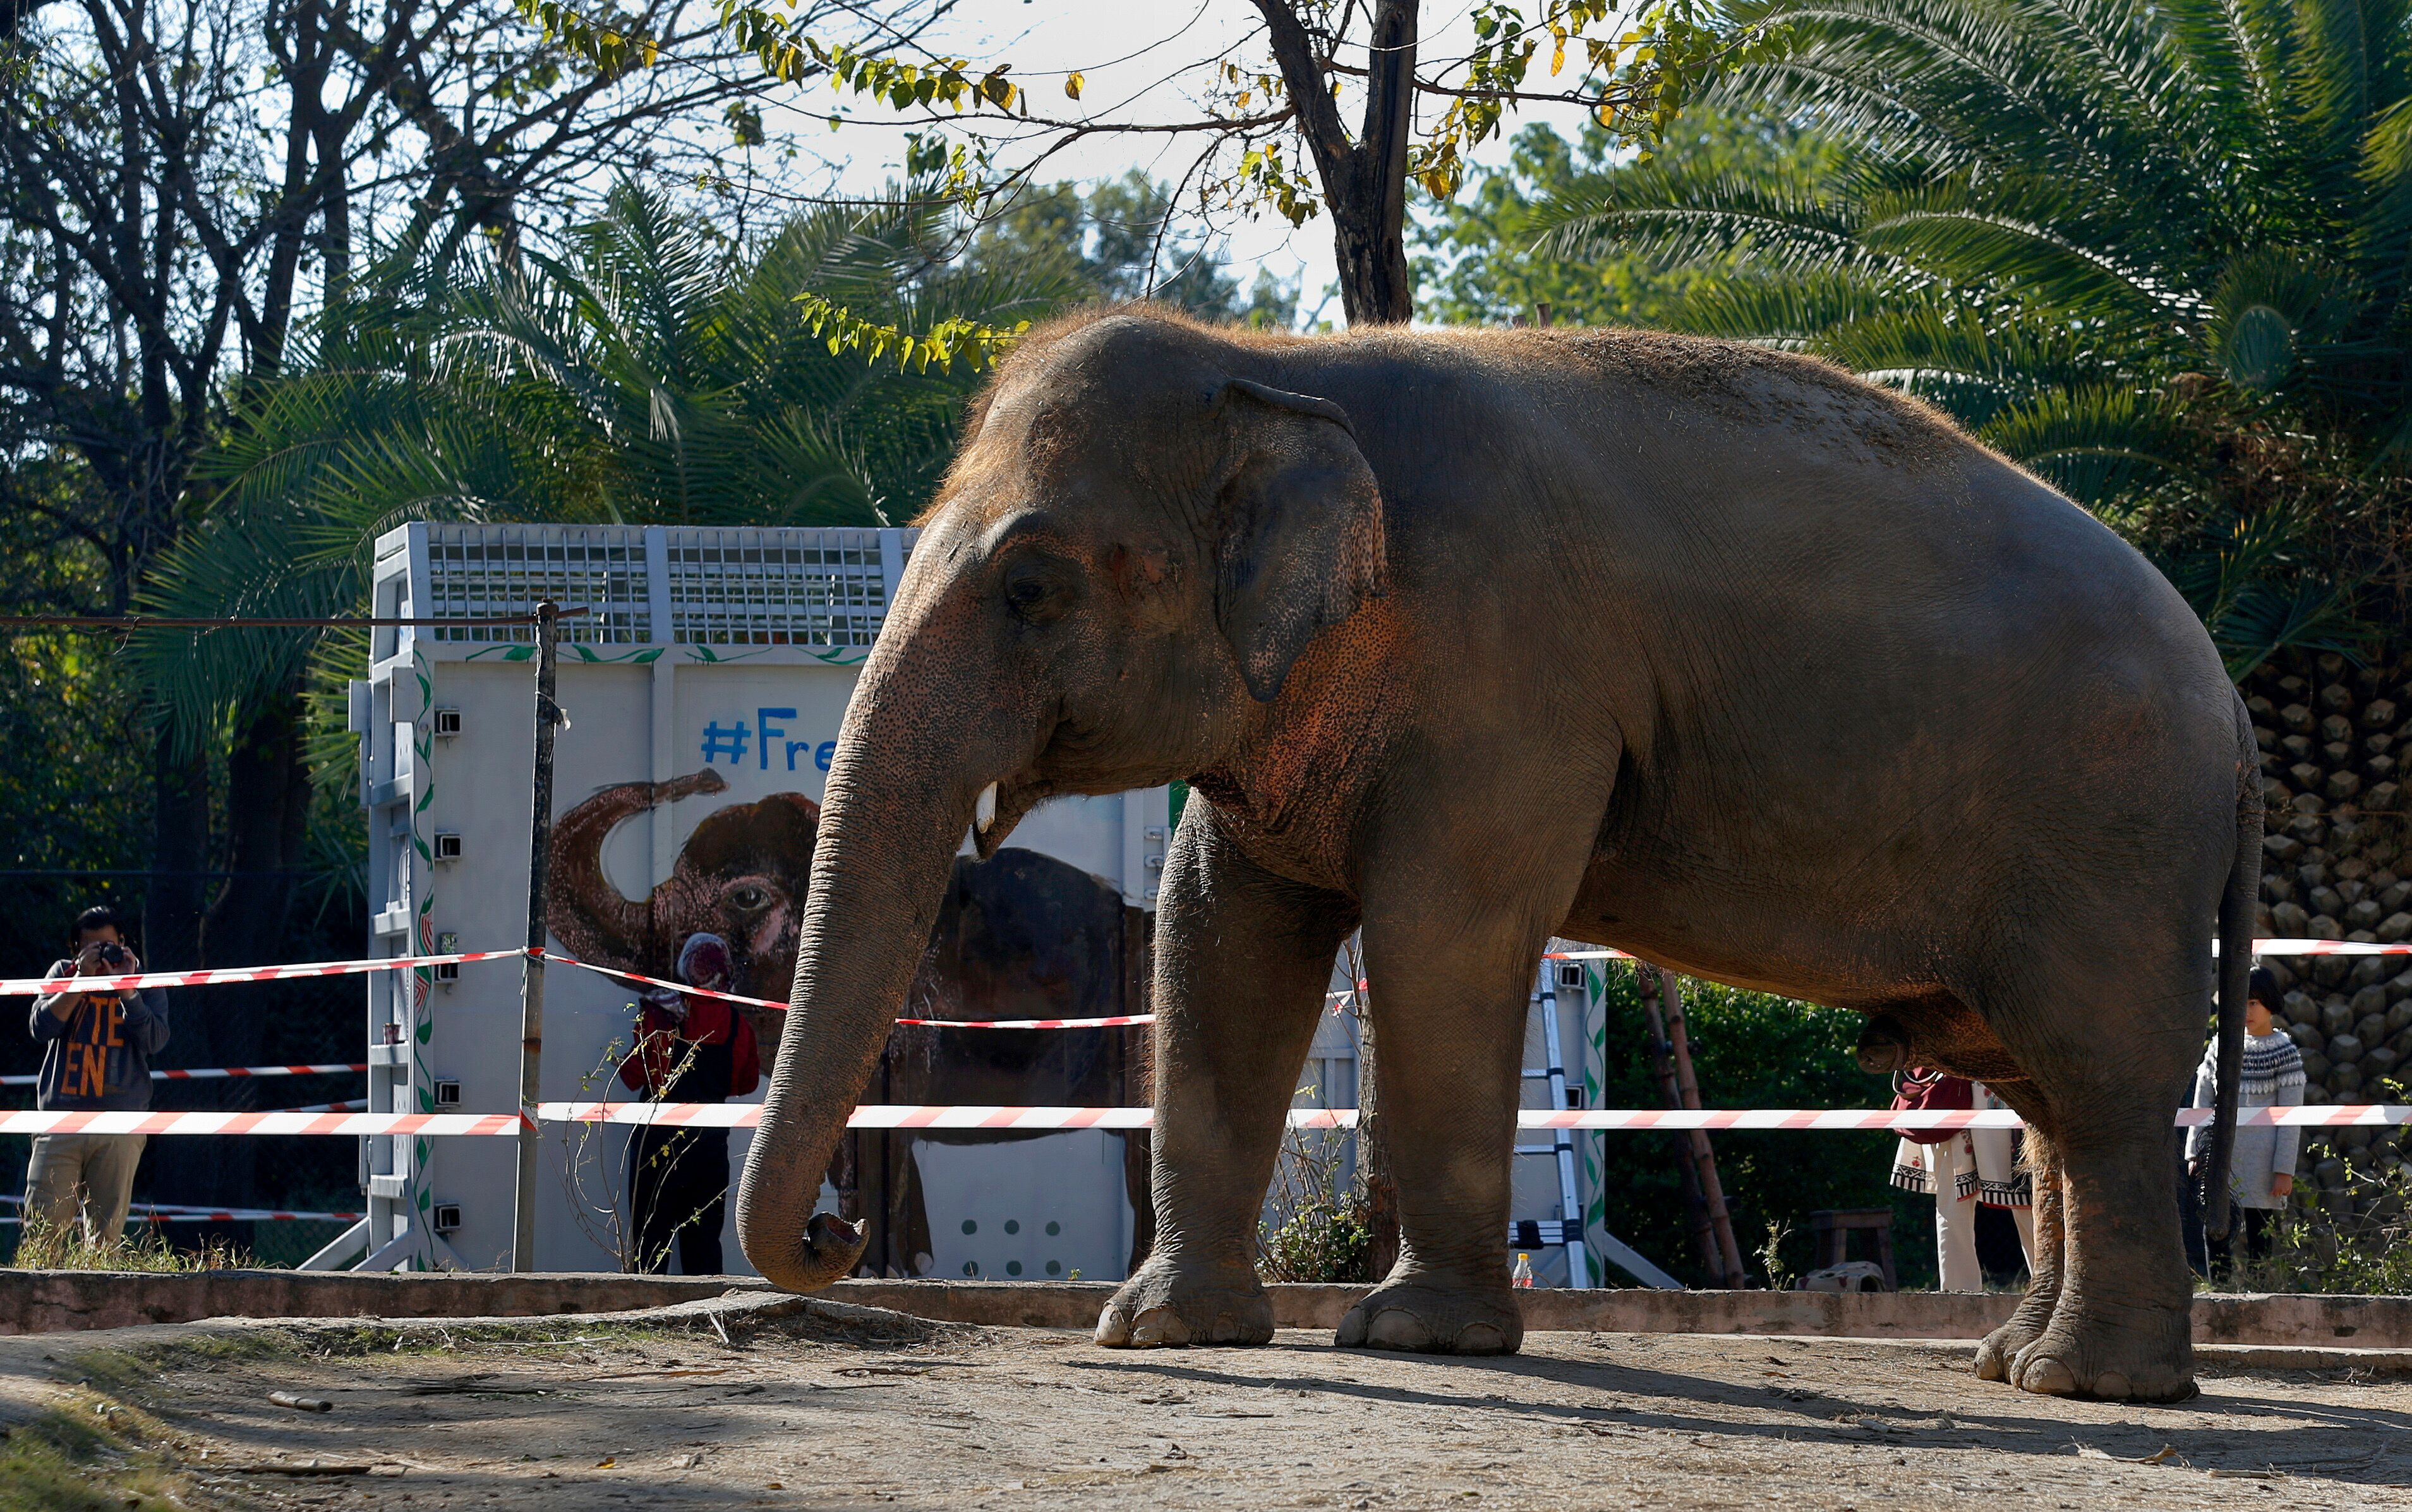 Kaavan is seen before guided into the crate, which will transport him to a sanctuary in Cambodia.